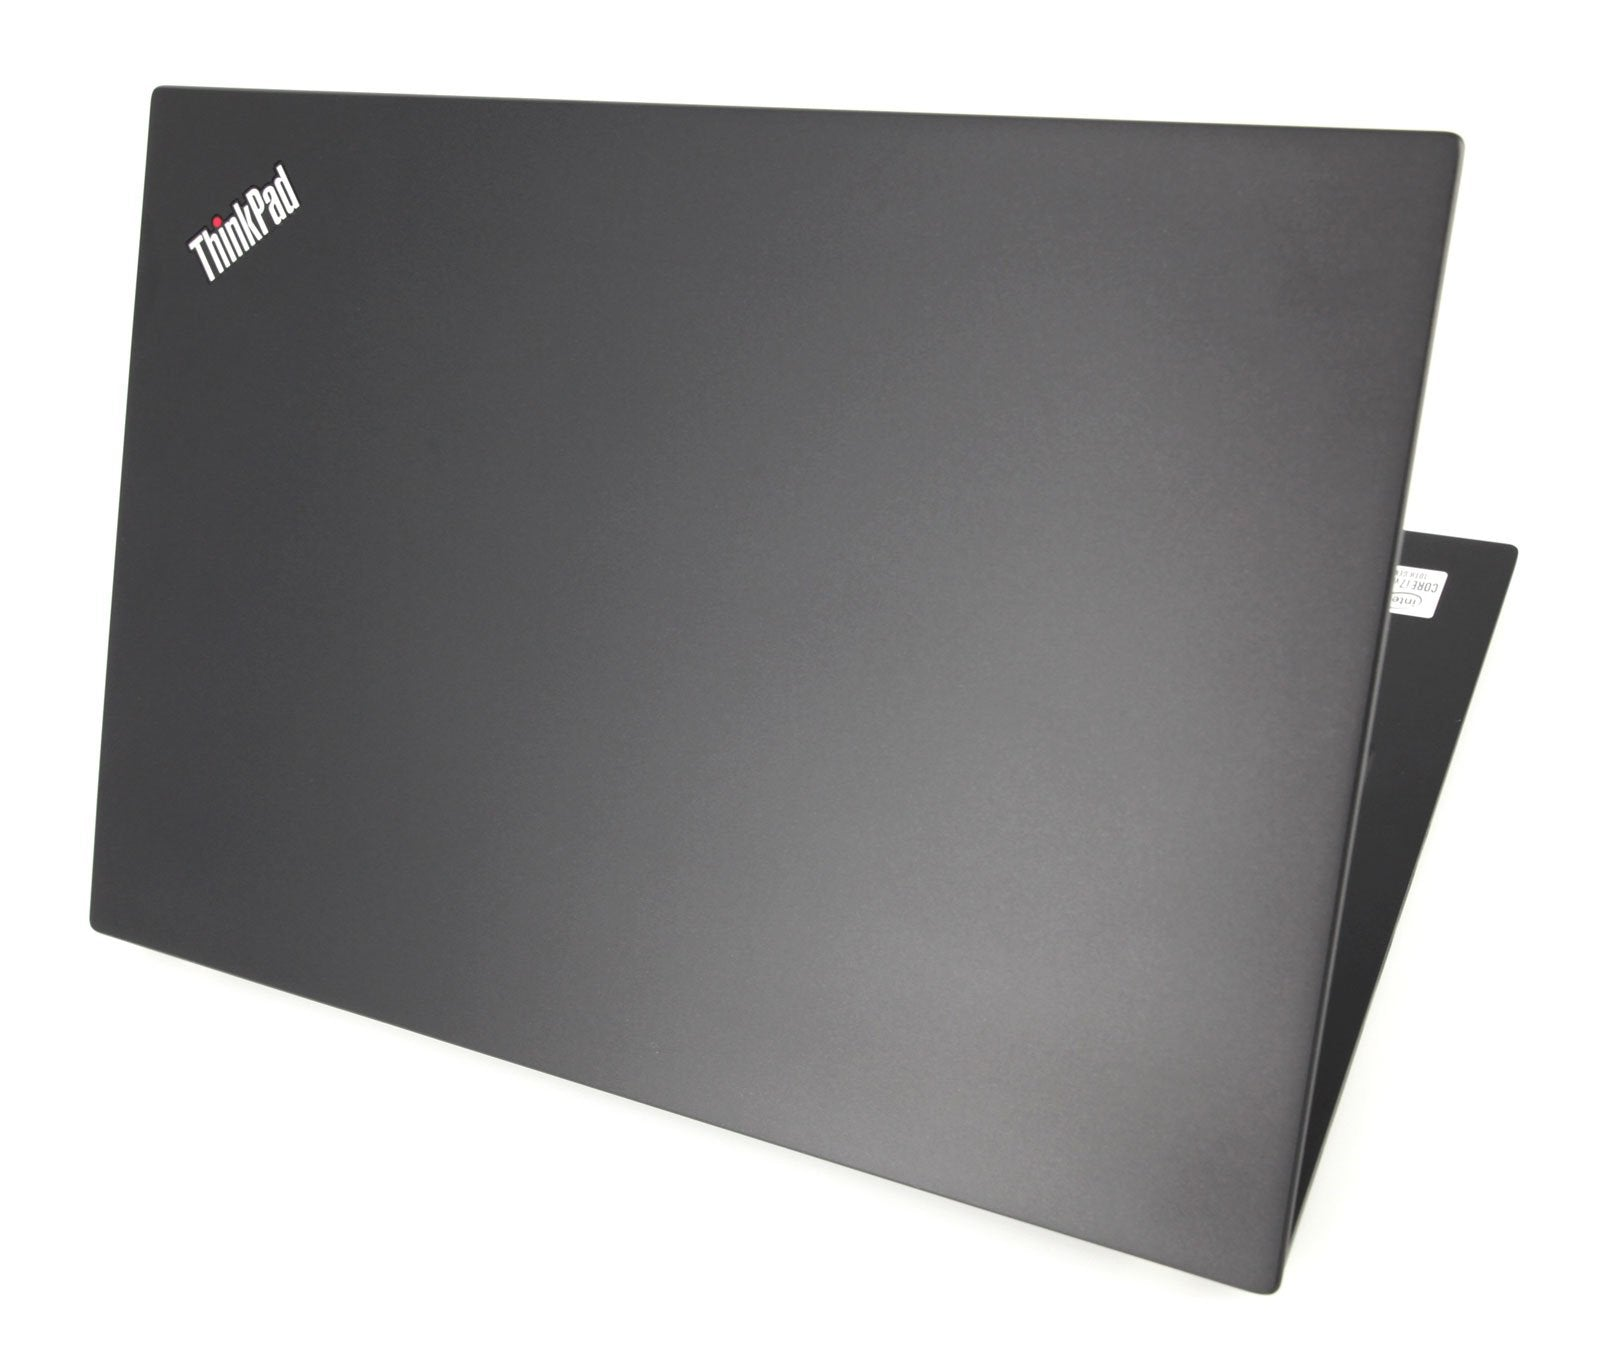 Lenovo Thinkpad T14s Gen 1 Laptop: Core i7-10610U, 256GB SSD, 16GB RAM, Warranty - CruiseTech